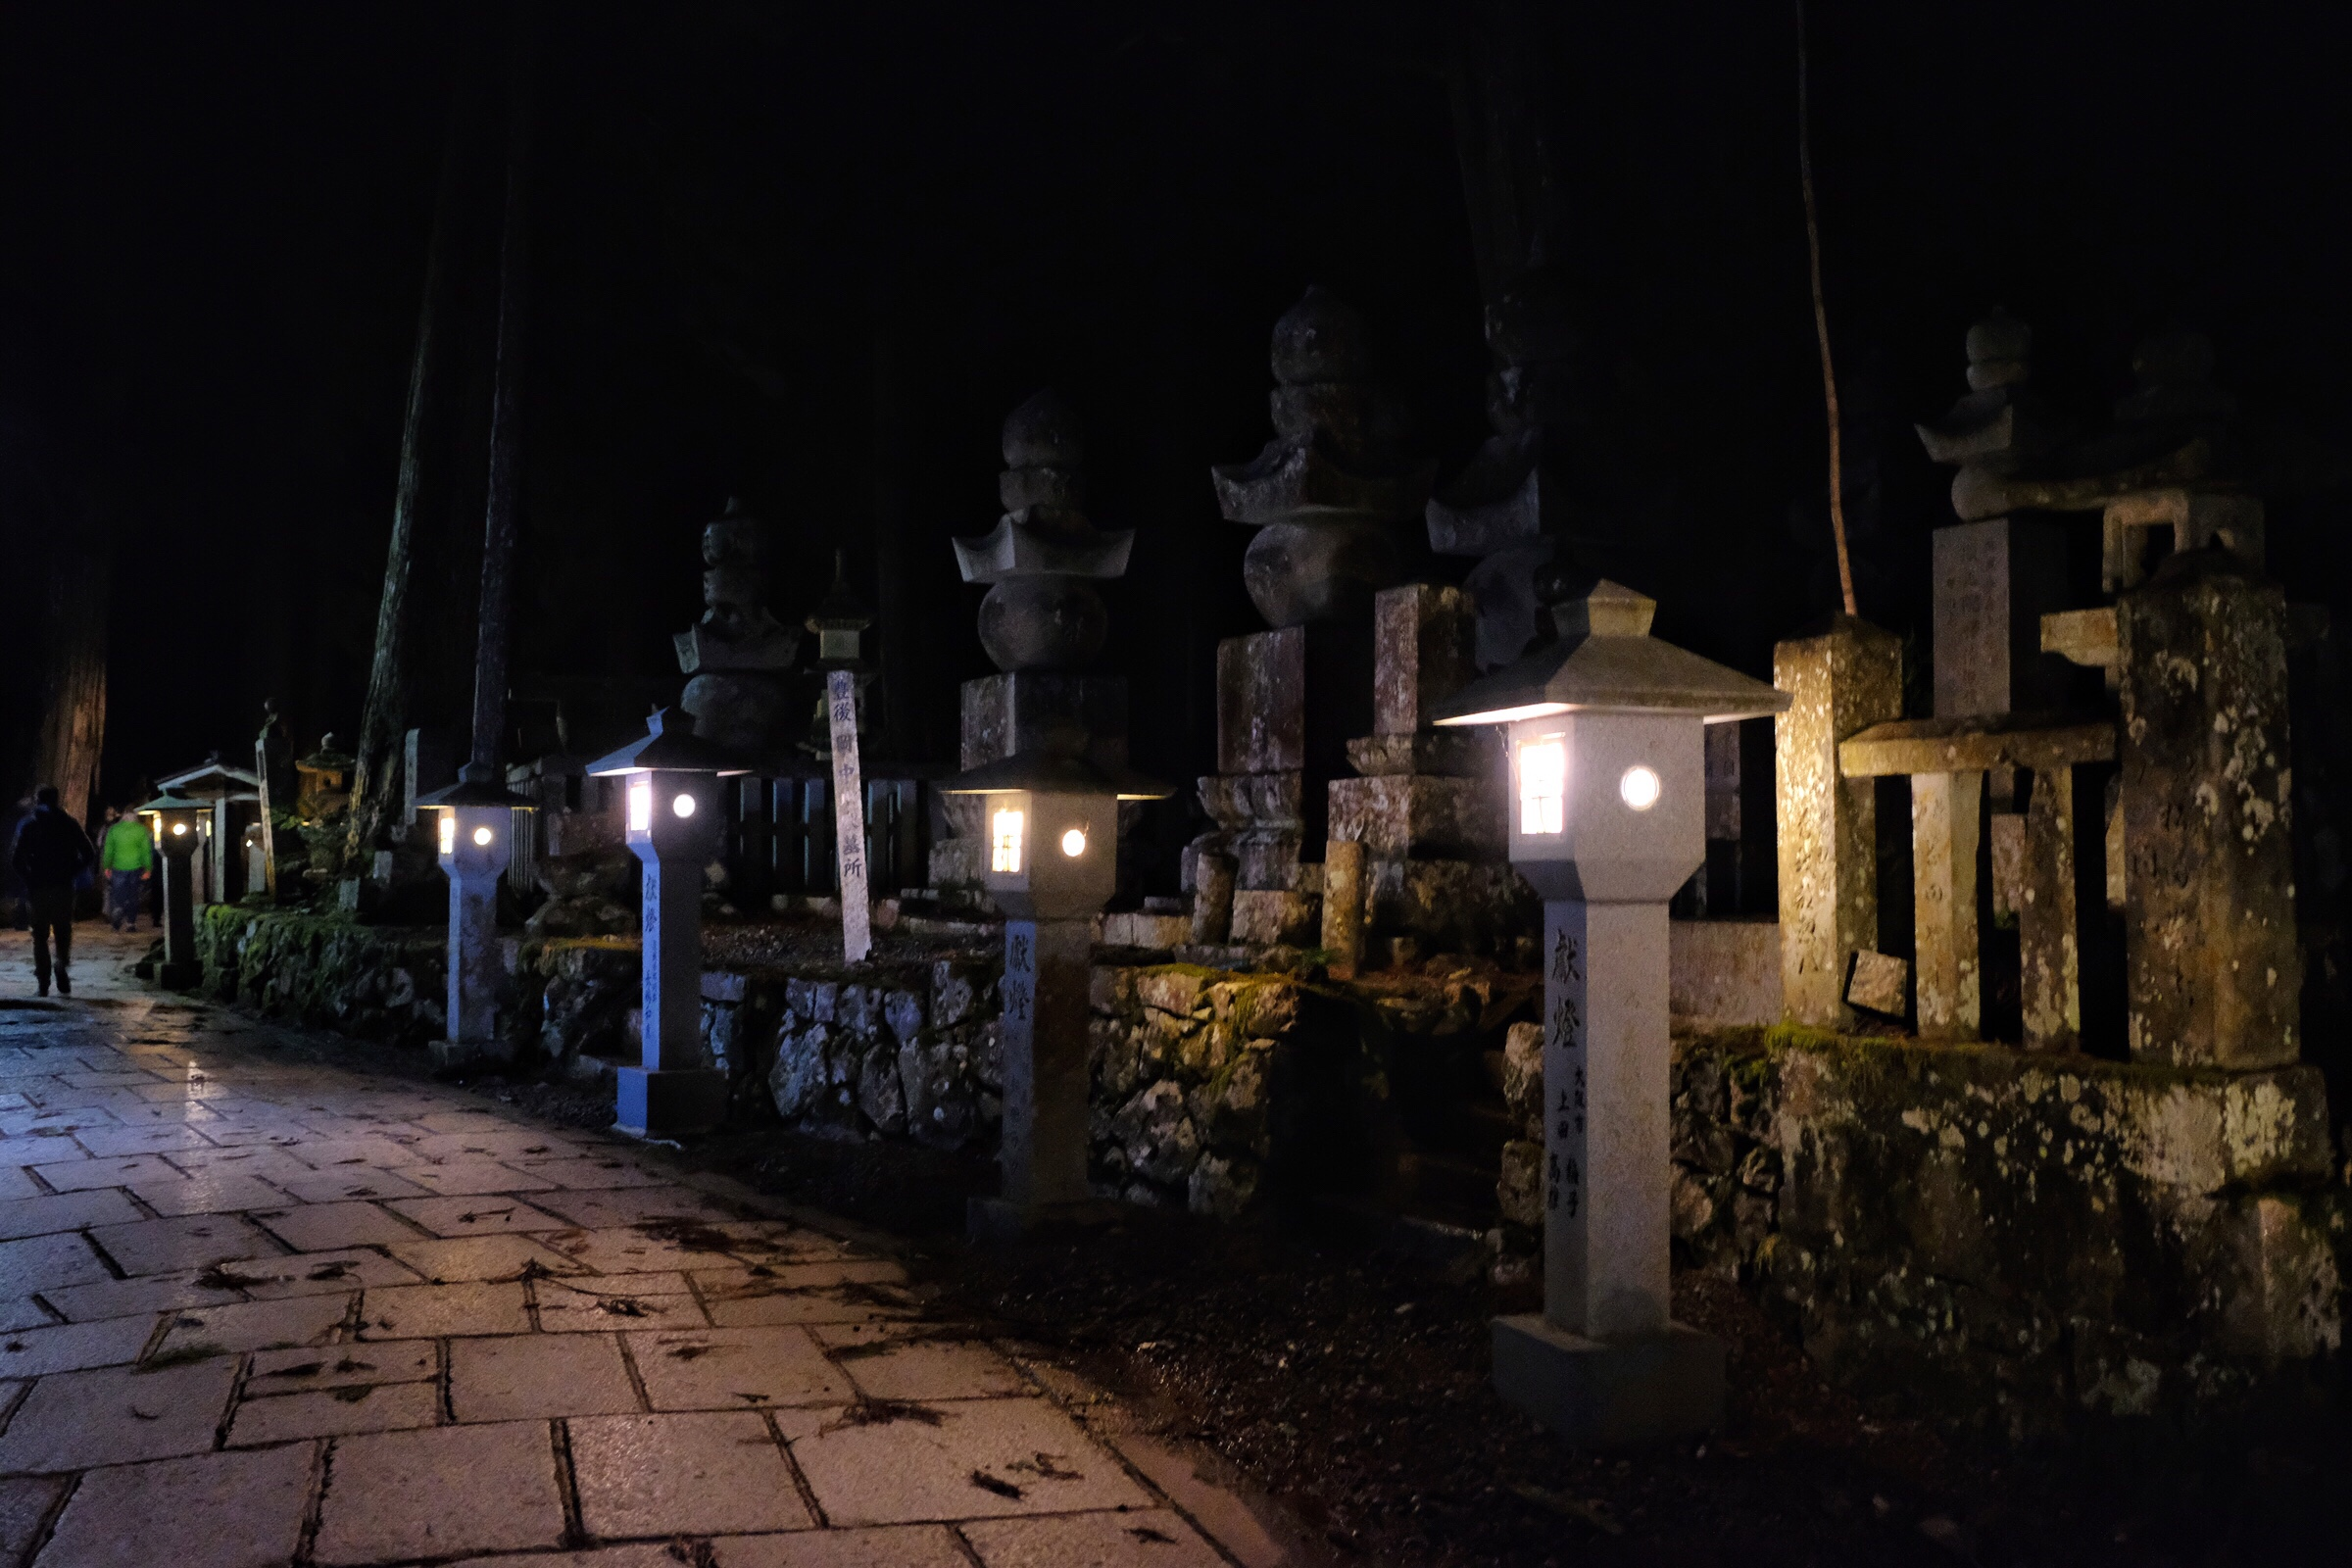 Japan - Koyasan - Okunoin Cemetery - Night walk